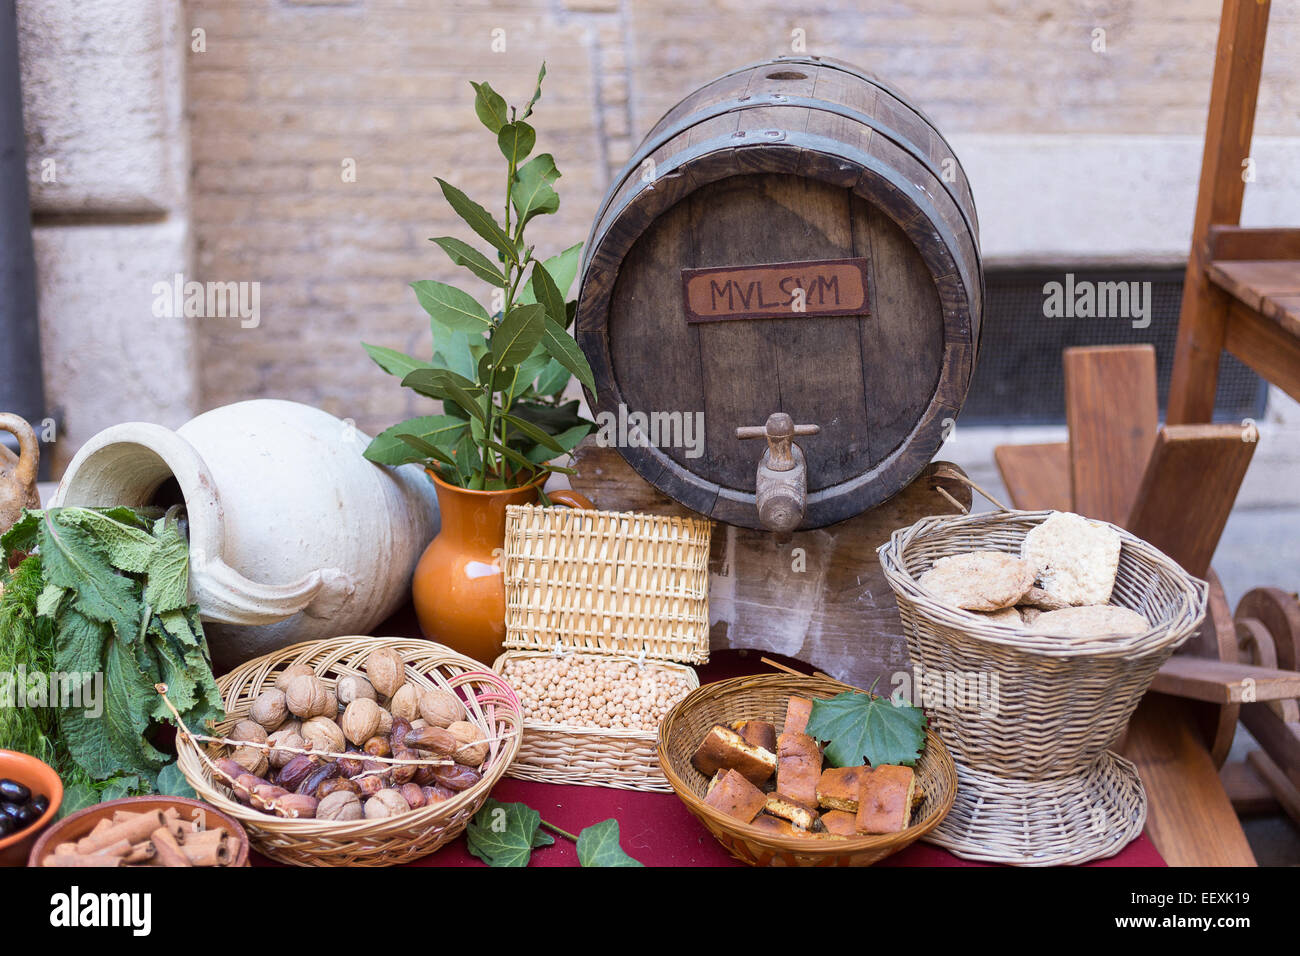 Küche Antikes Rom Ancient Roman Food Stockfotos And Ancient Roman Food Bilder